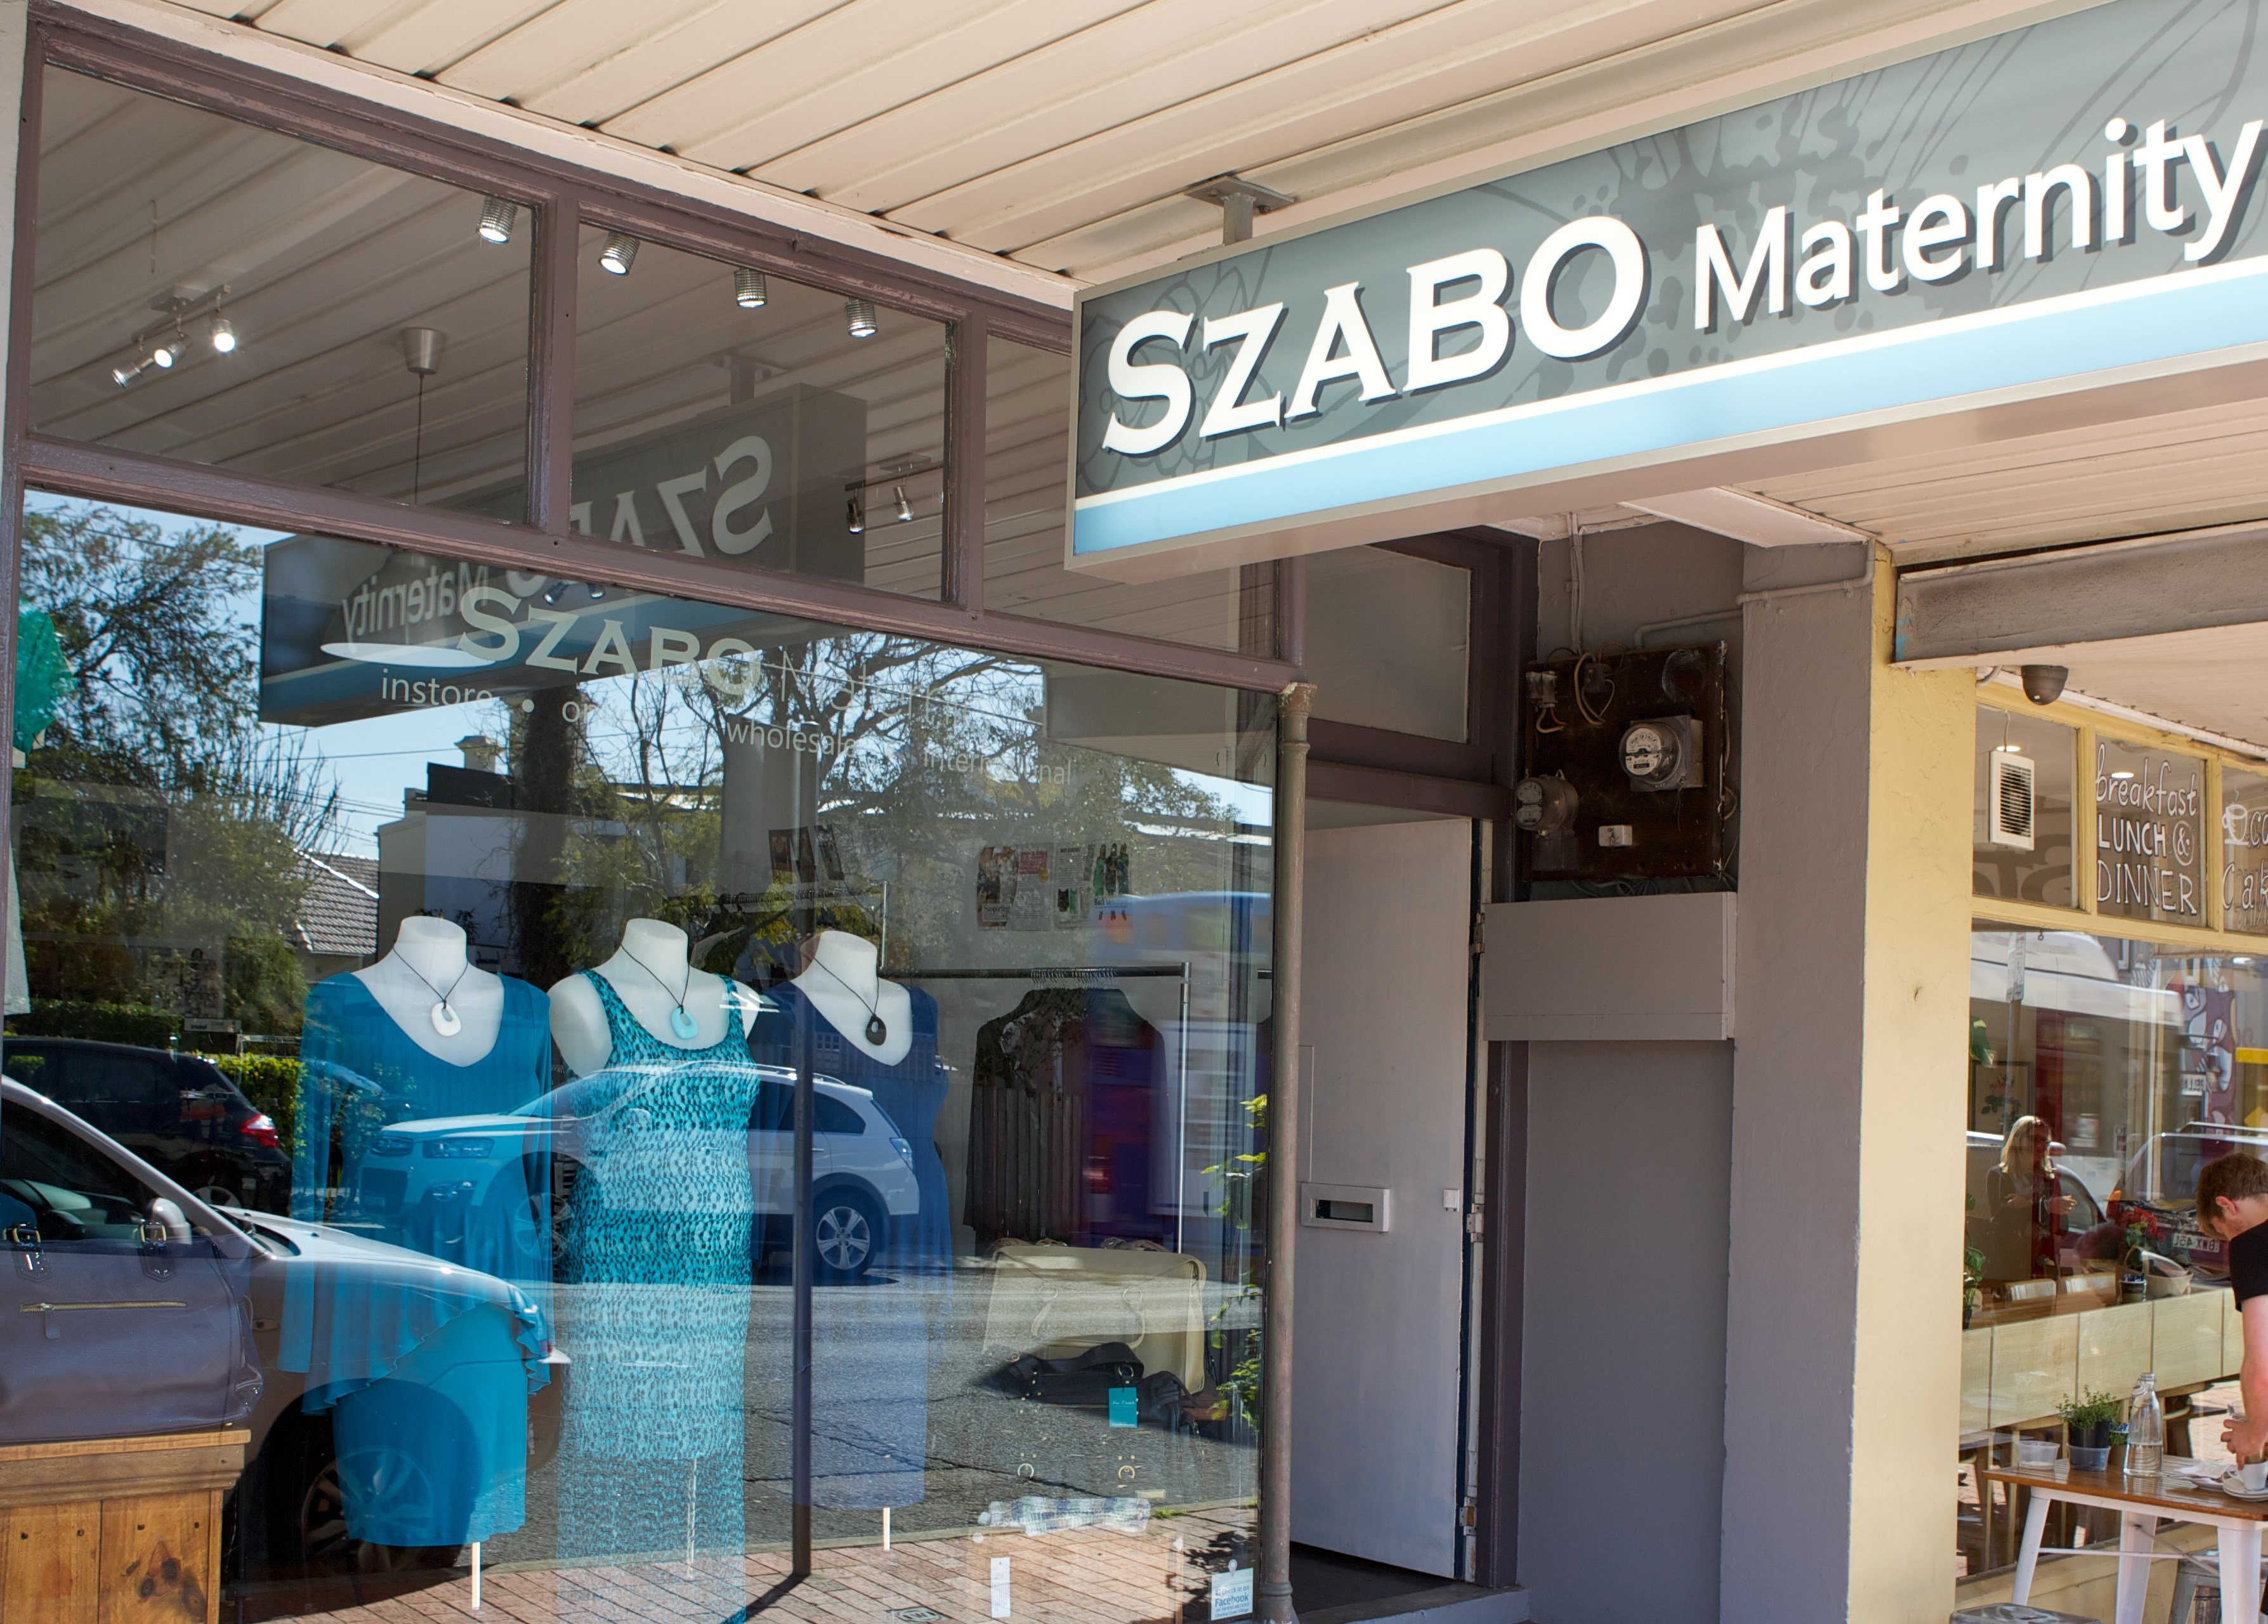 A day @ Szabo Maternity